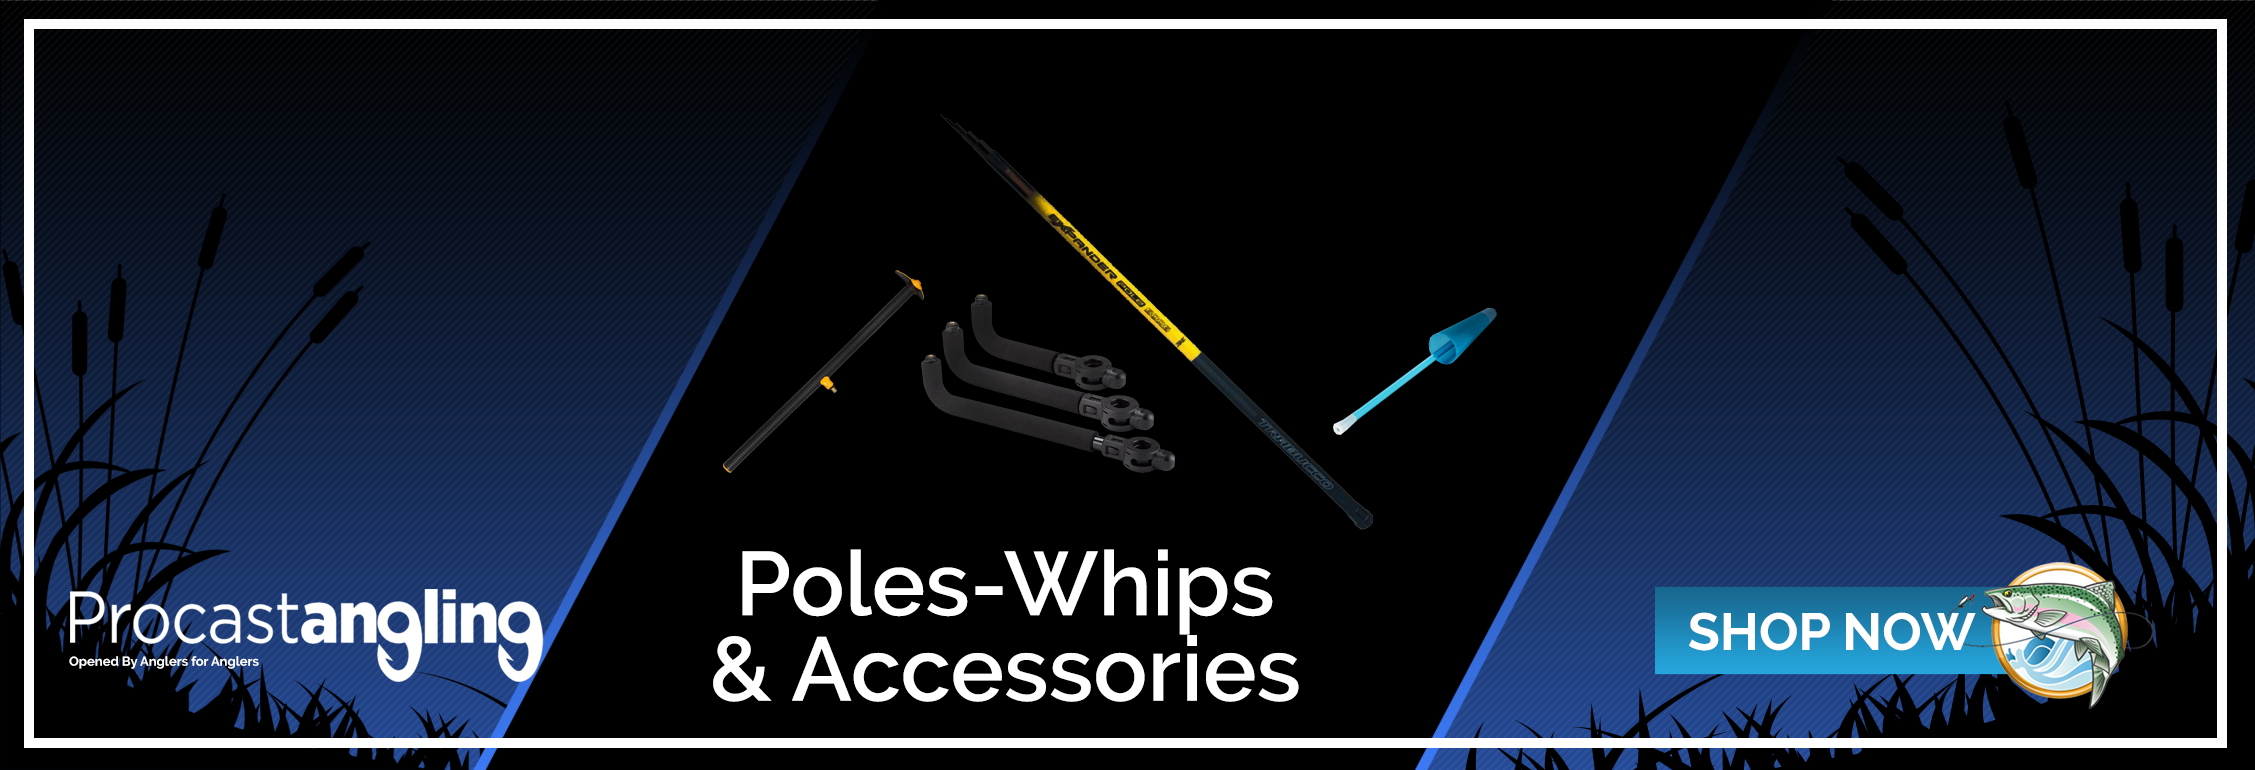 POLES-WHIPS-ACCESSORIES